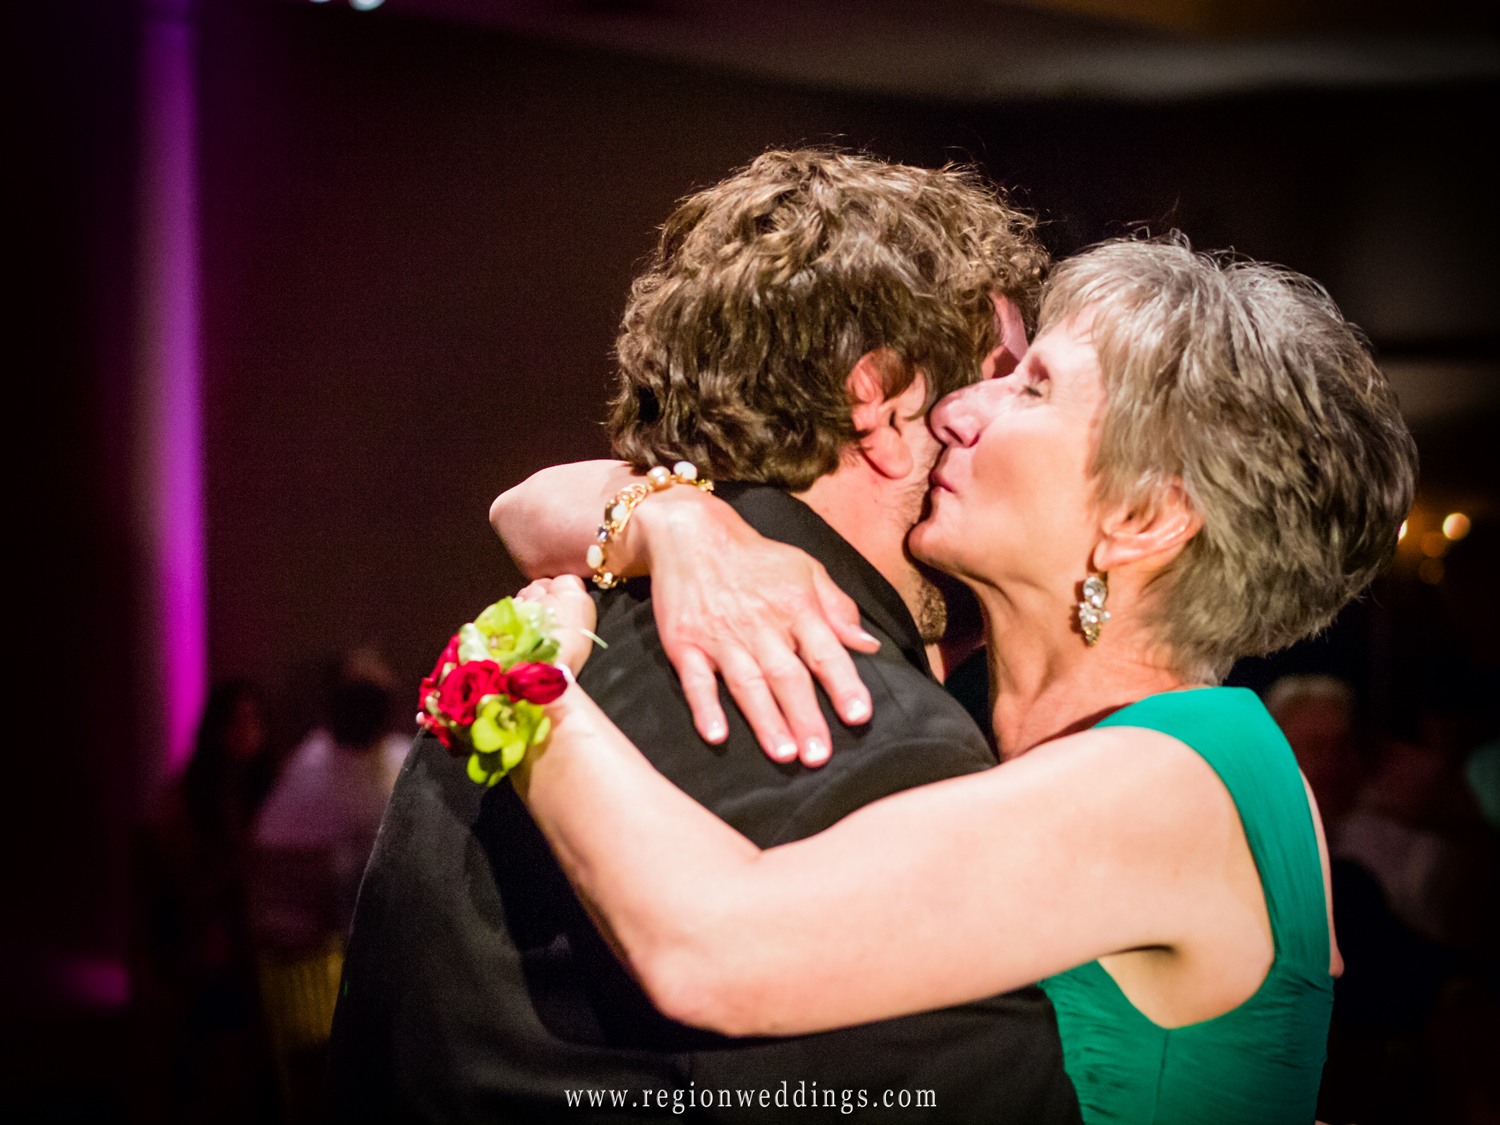 A tender moment on the dance floor between mother and son.